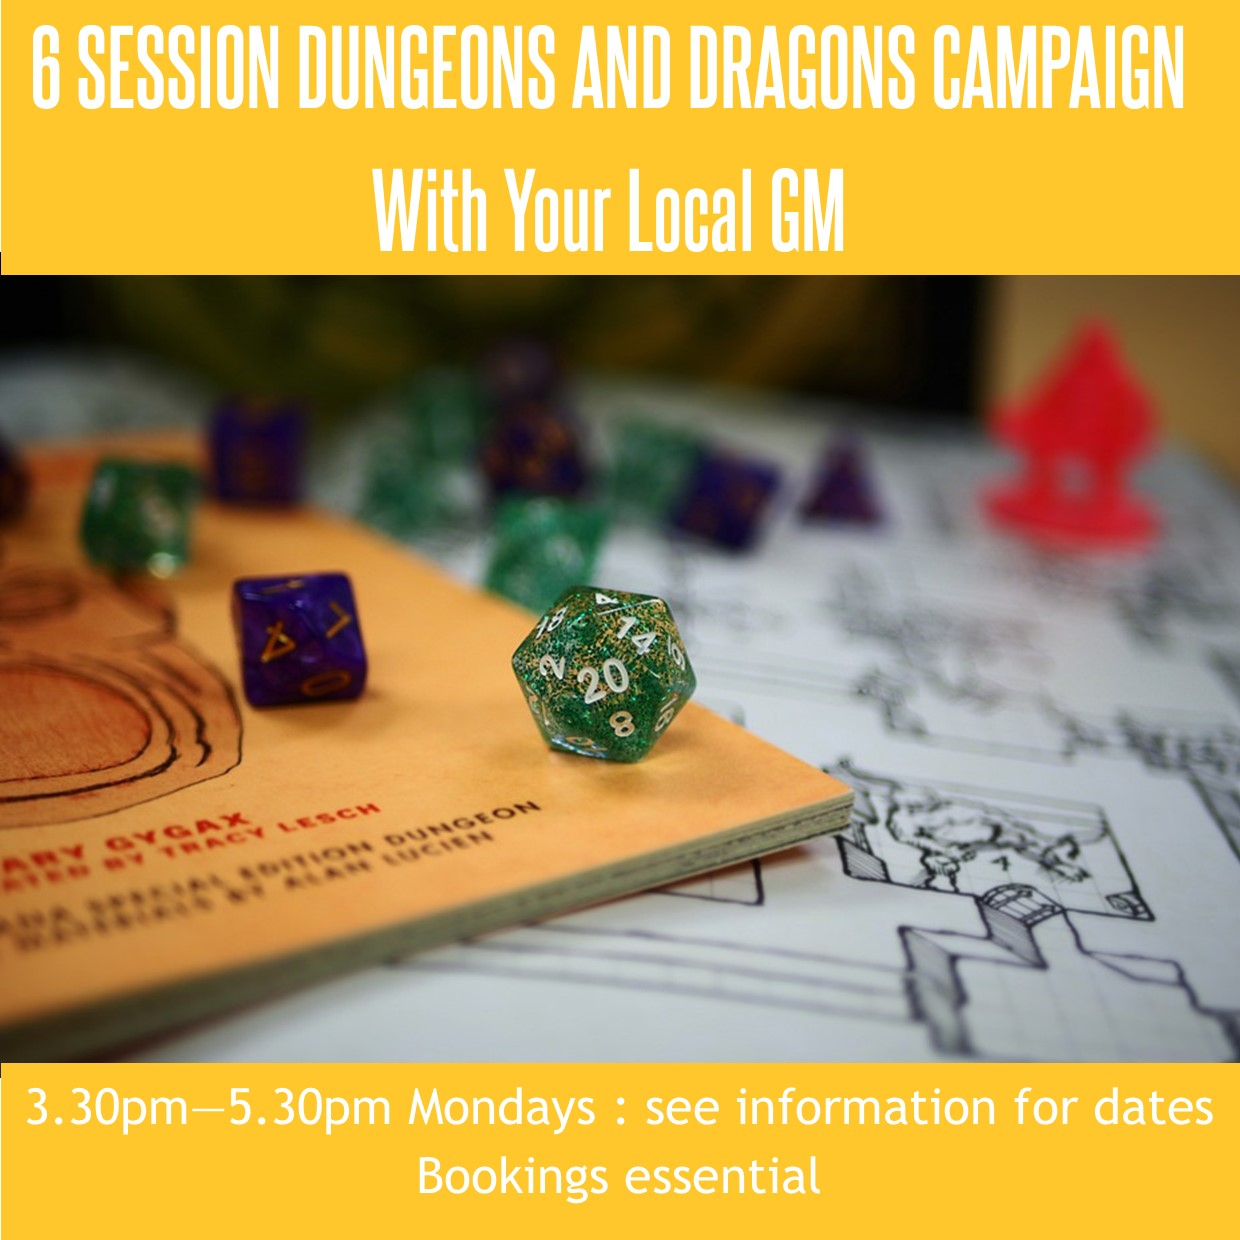 6 Session Dungeons and Dragons Campaign with Your Local GM